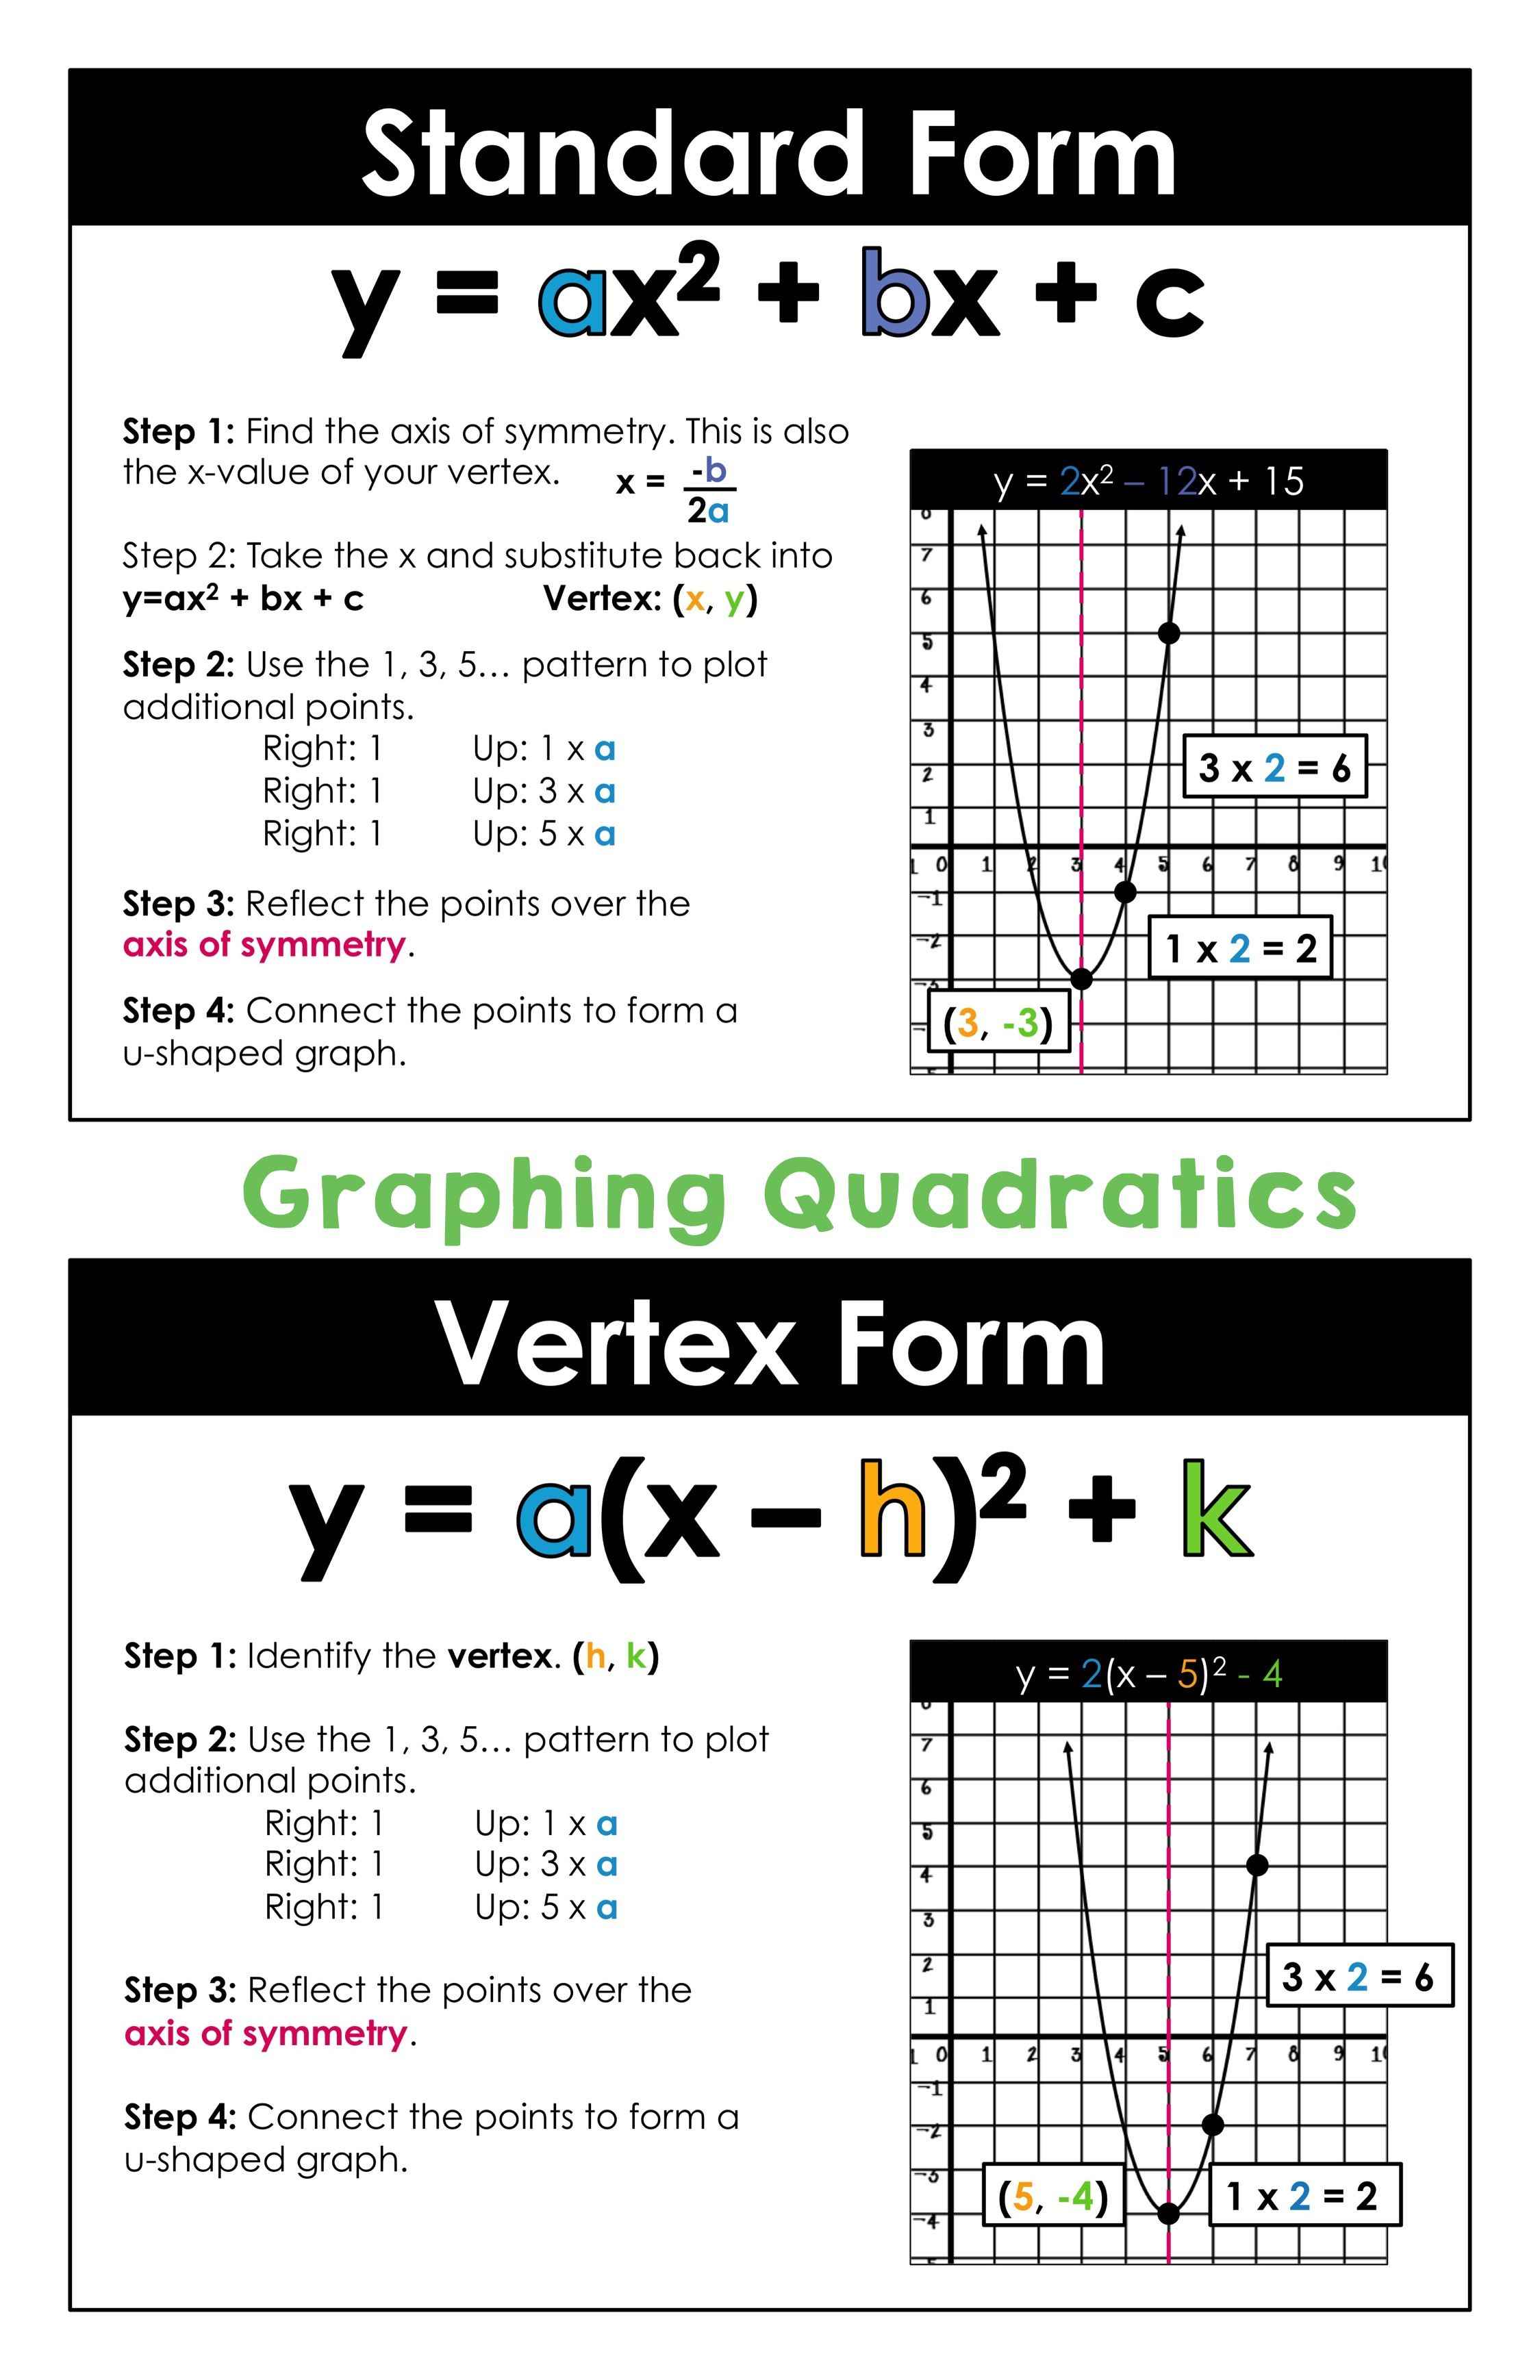 Graphing Quadratic Functions Posters Standard Form And